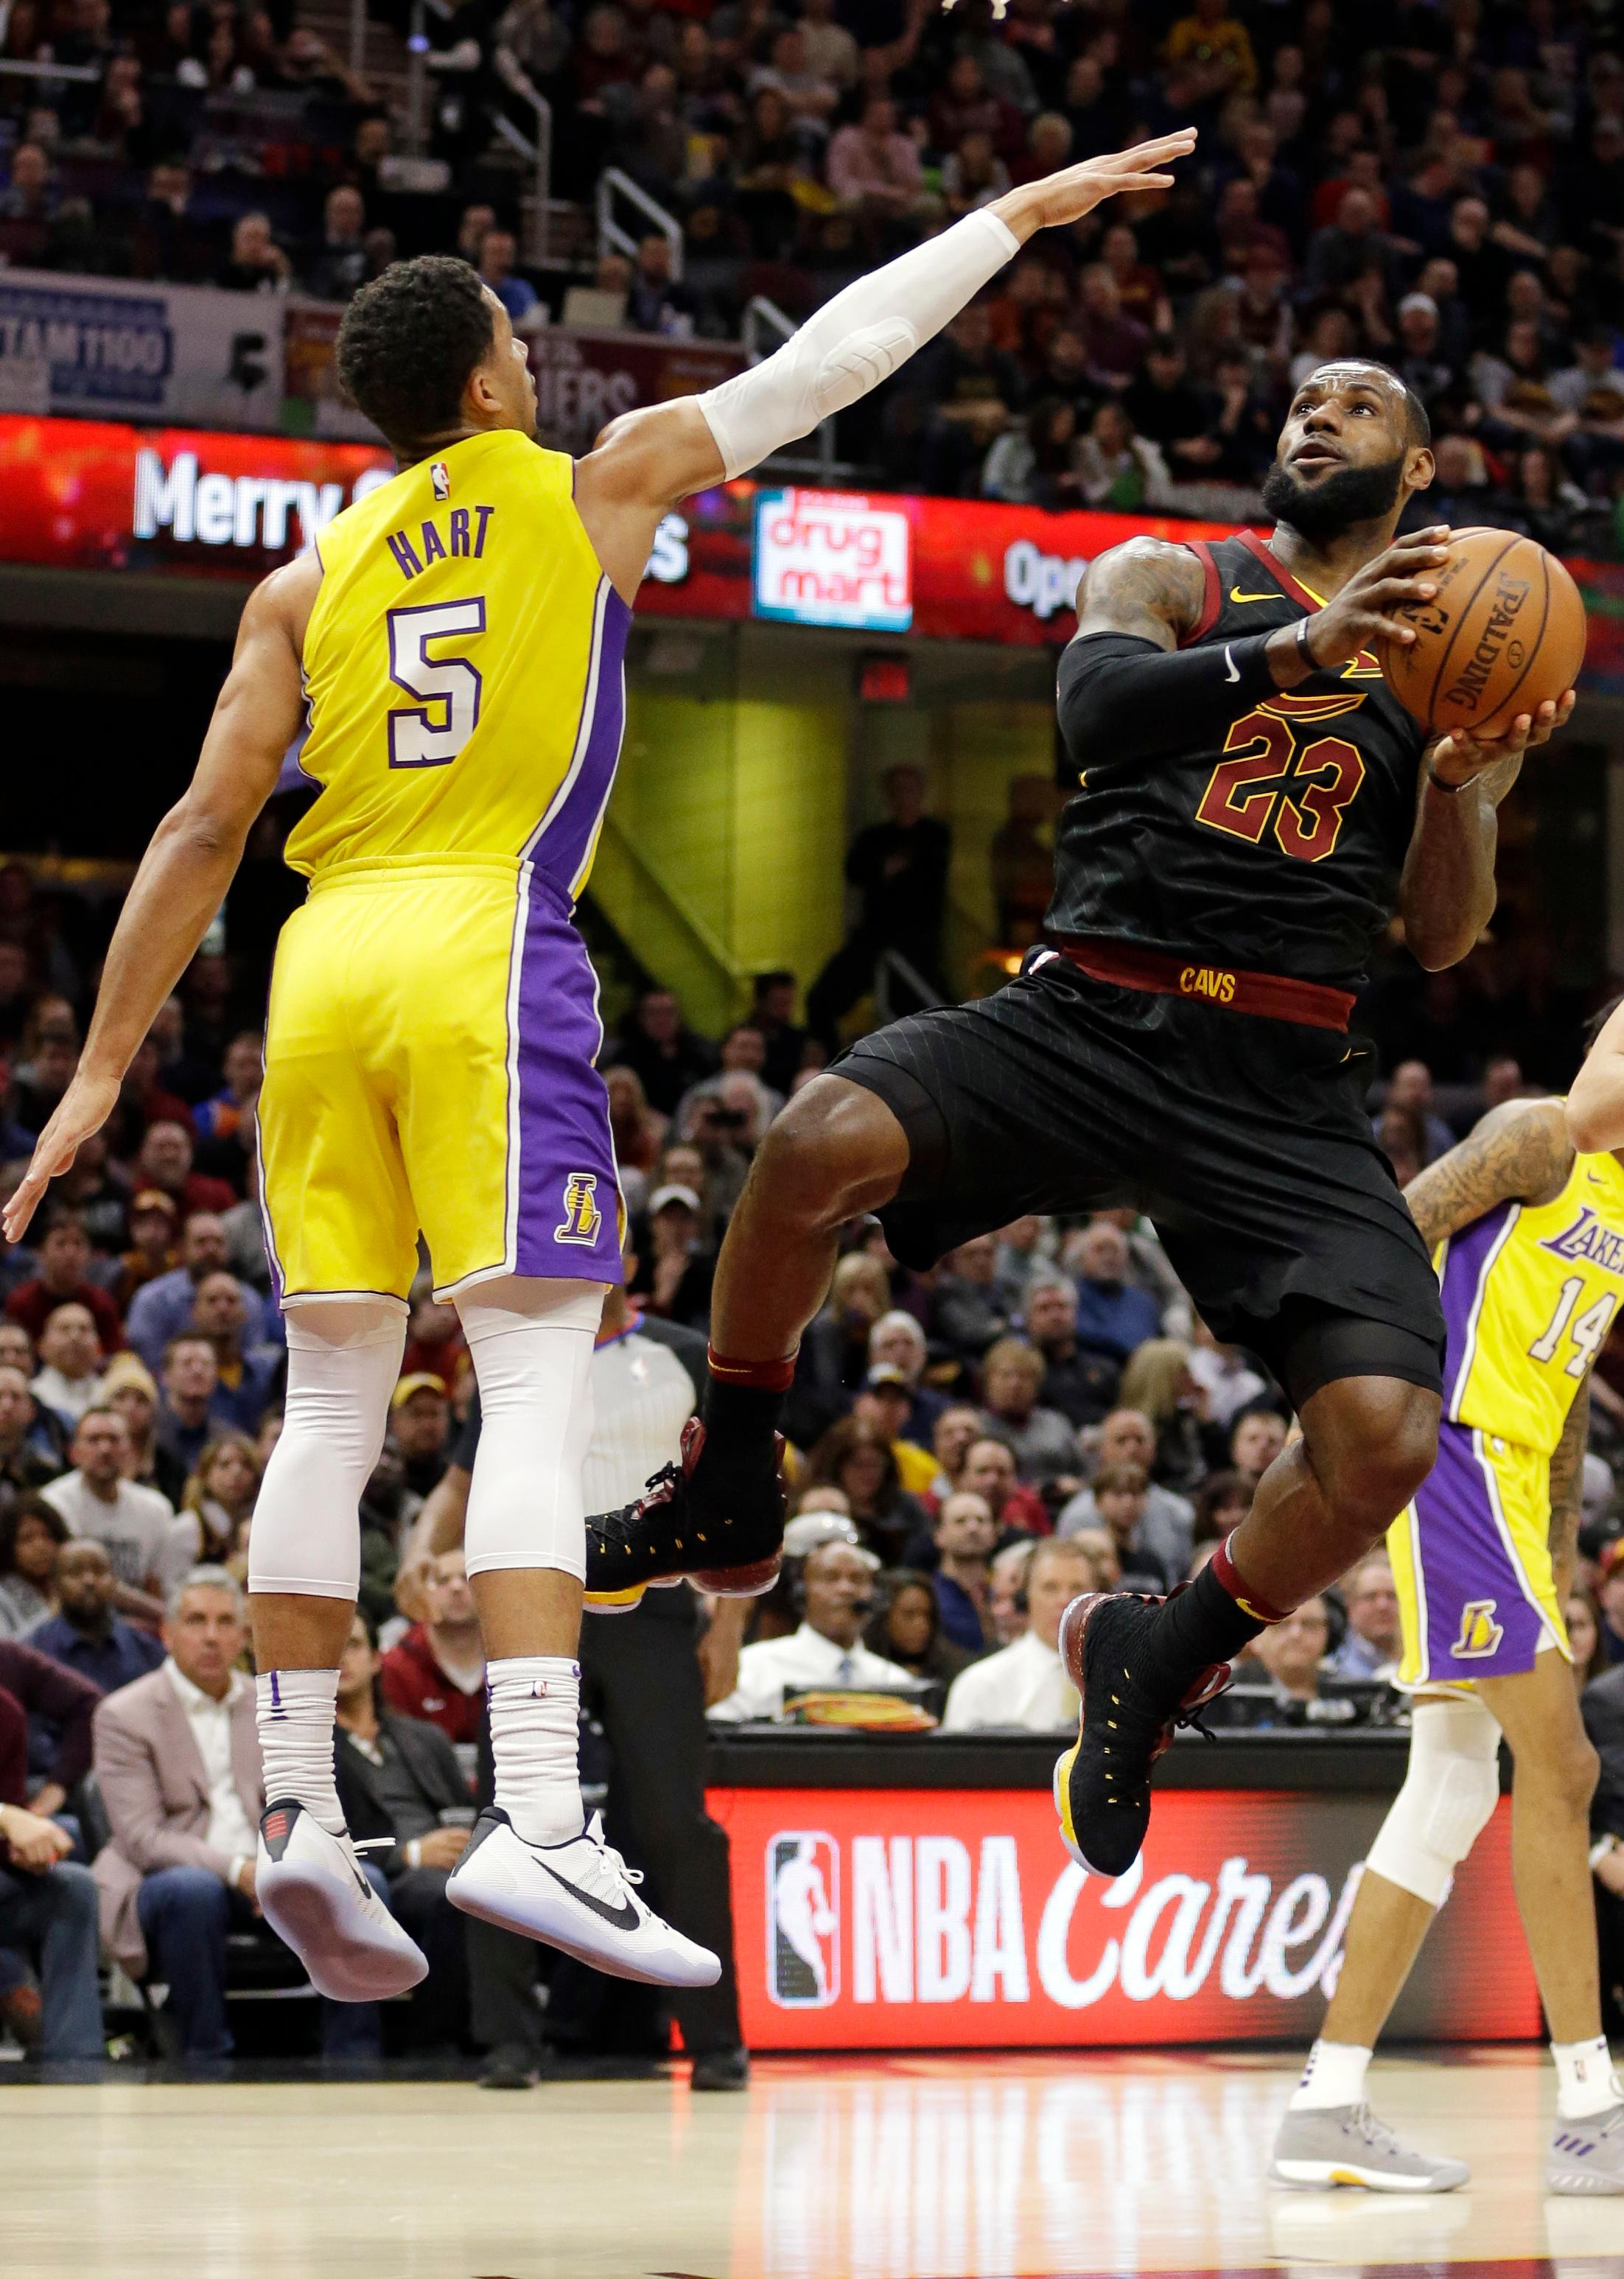 Cleveland Cavaliers' LeBron James (23) drives to the basket against Los Angeles Lakers' Josh Hart (5) in the first half of an NBA basketball game, Thursday, Dec. 14, 2017, in Cleveland. (AP Photo/Tony Dejak)